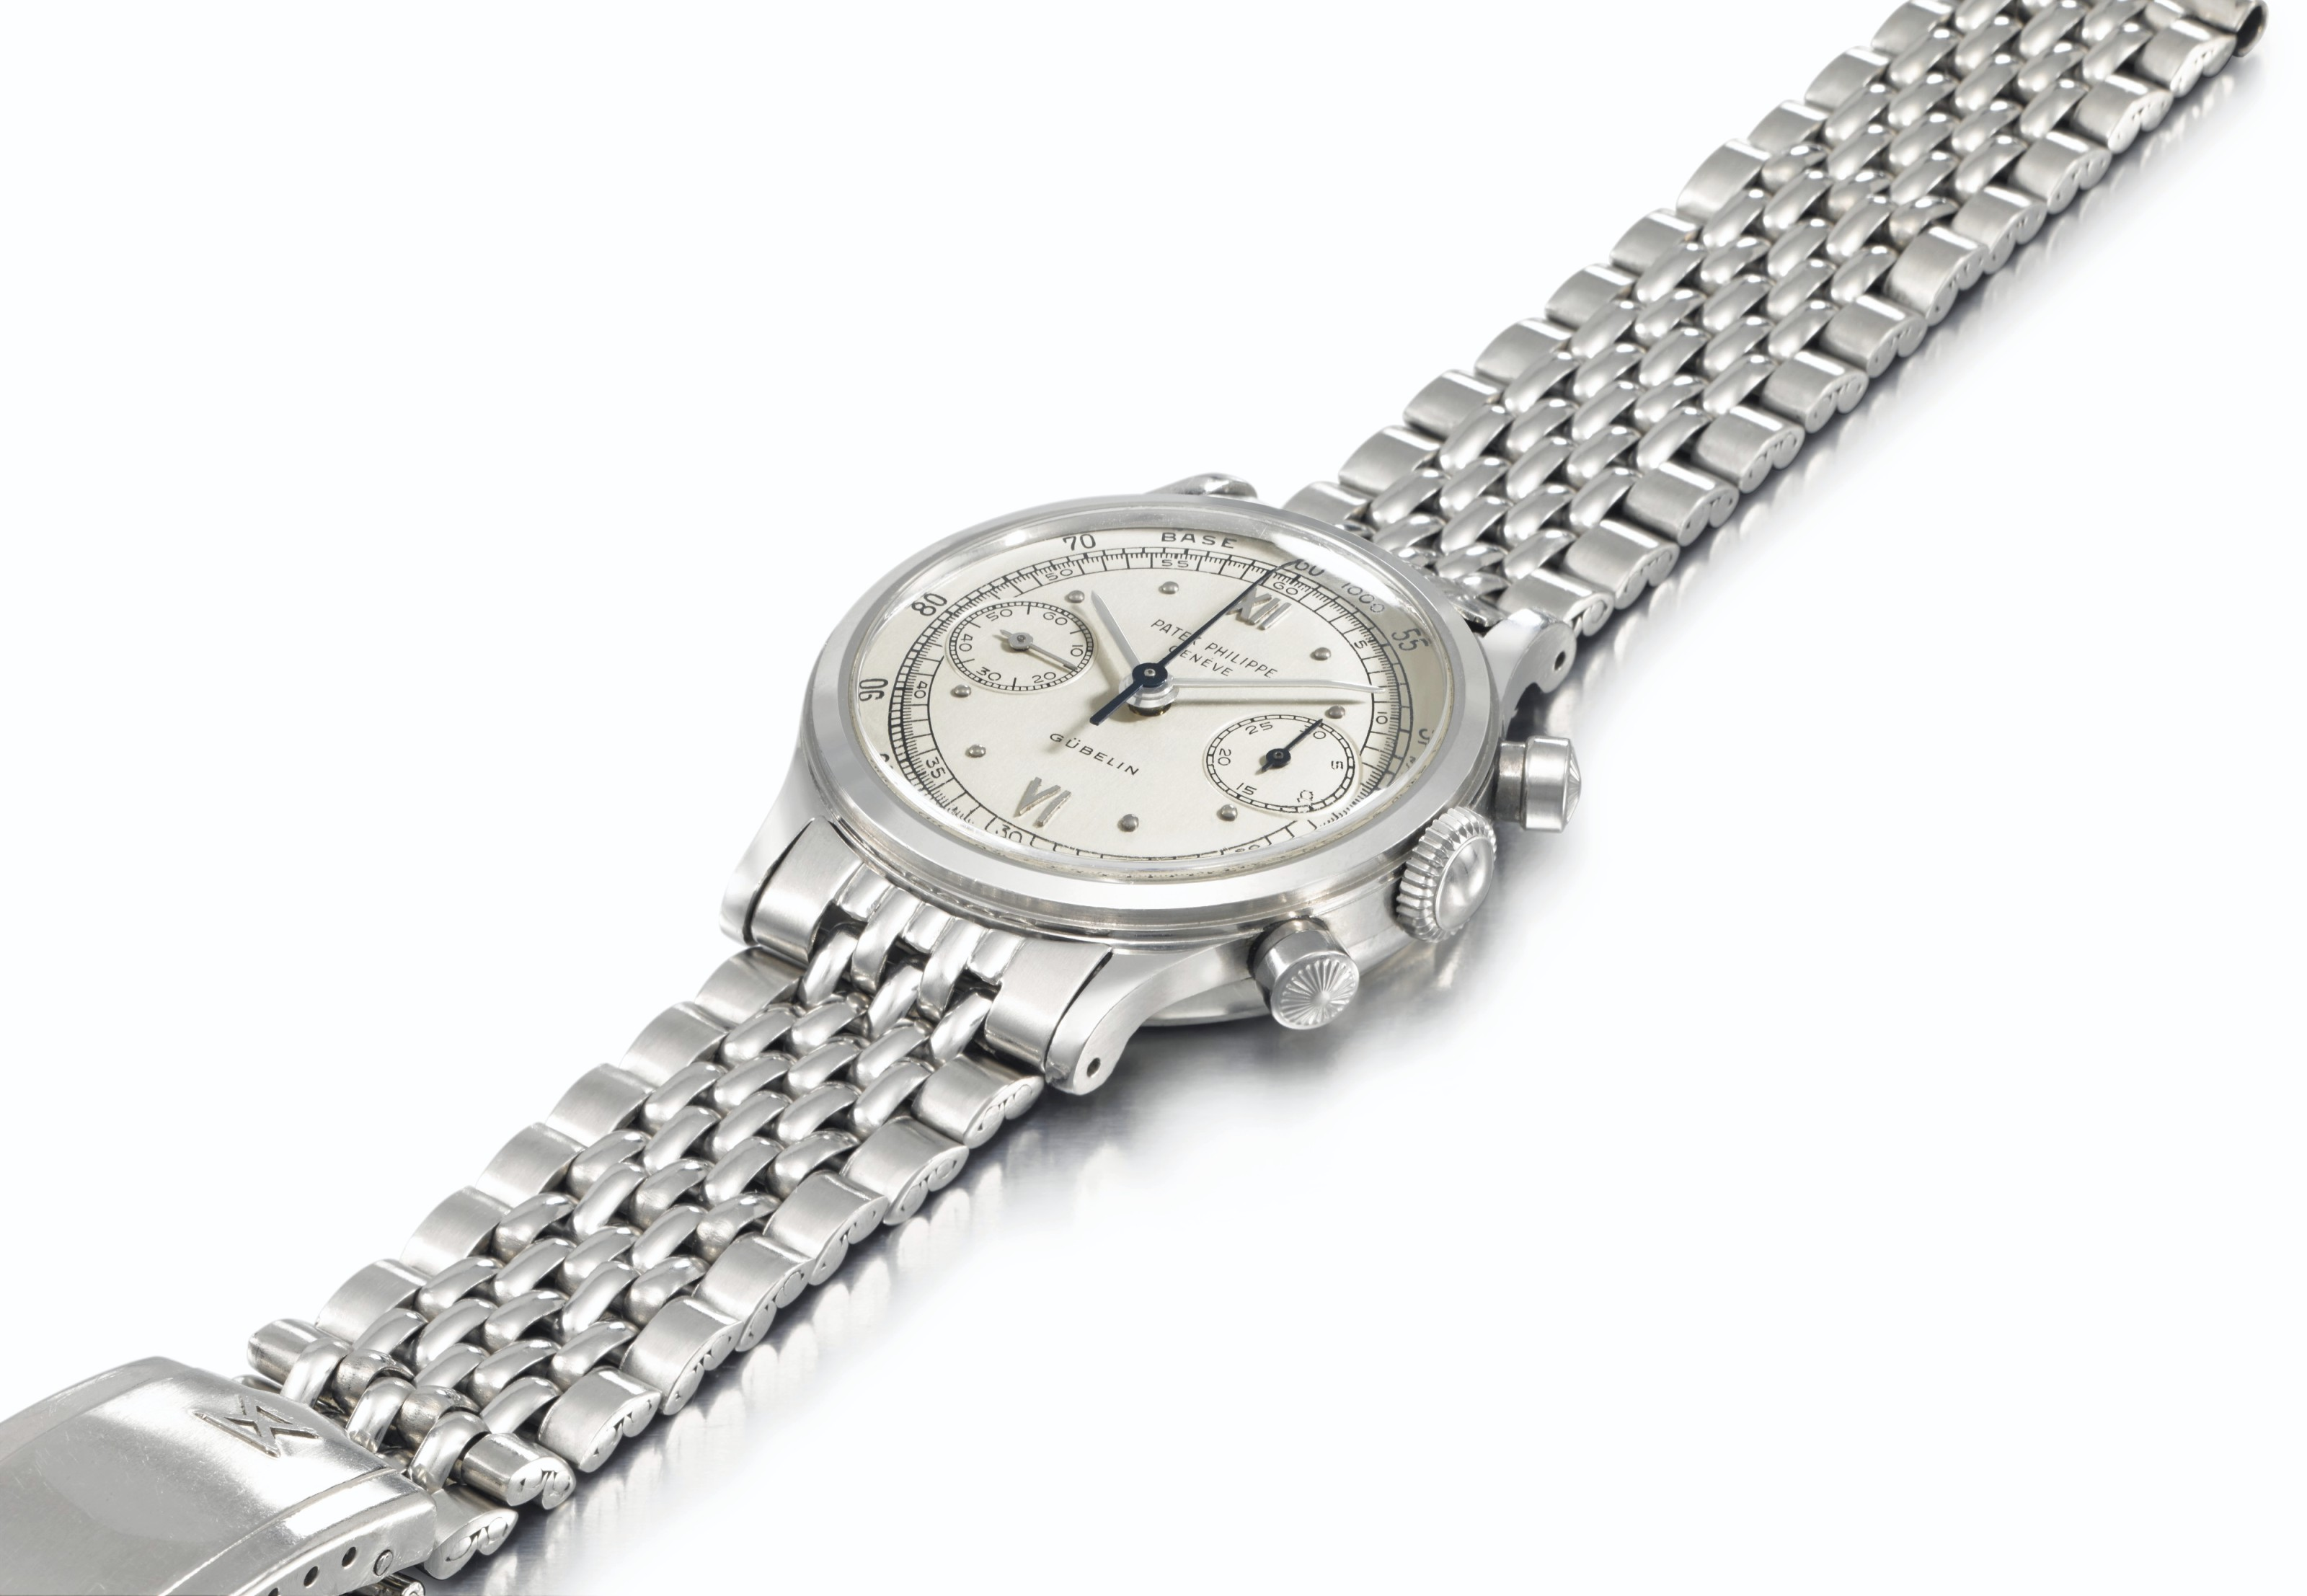 Patek Philippe. An Extremely Fine, Rare and Attractive Stainless Steel Chronograph Wristwatch with Bracelet